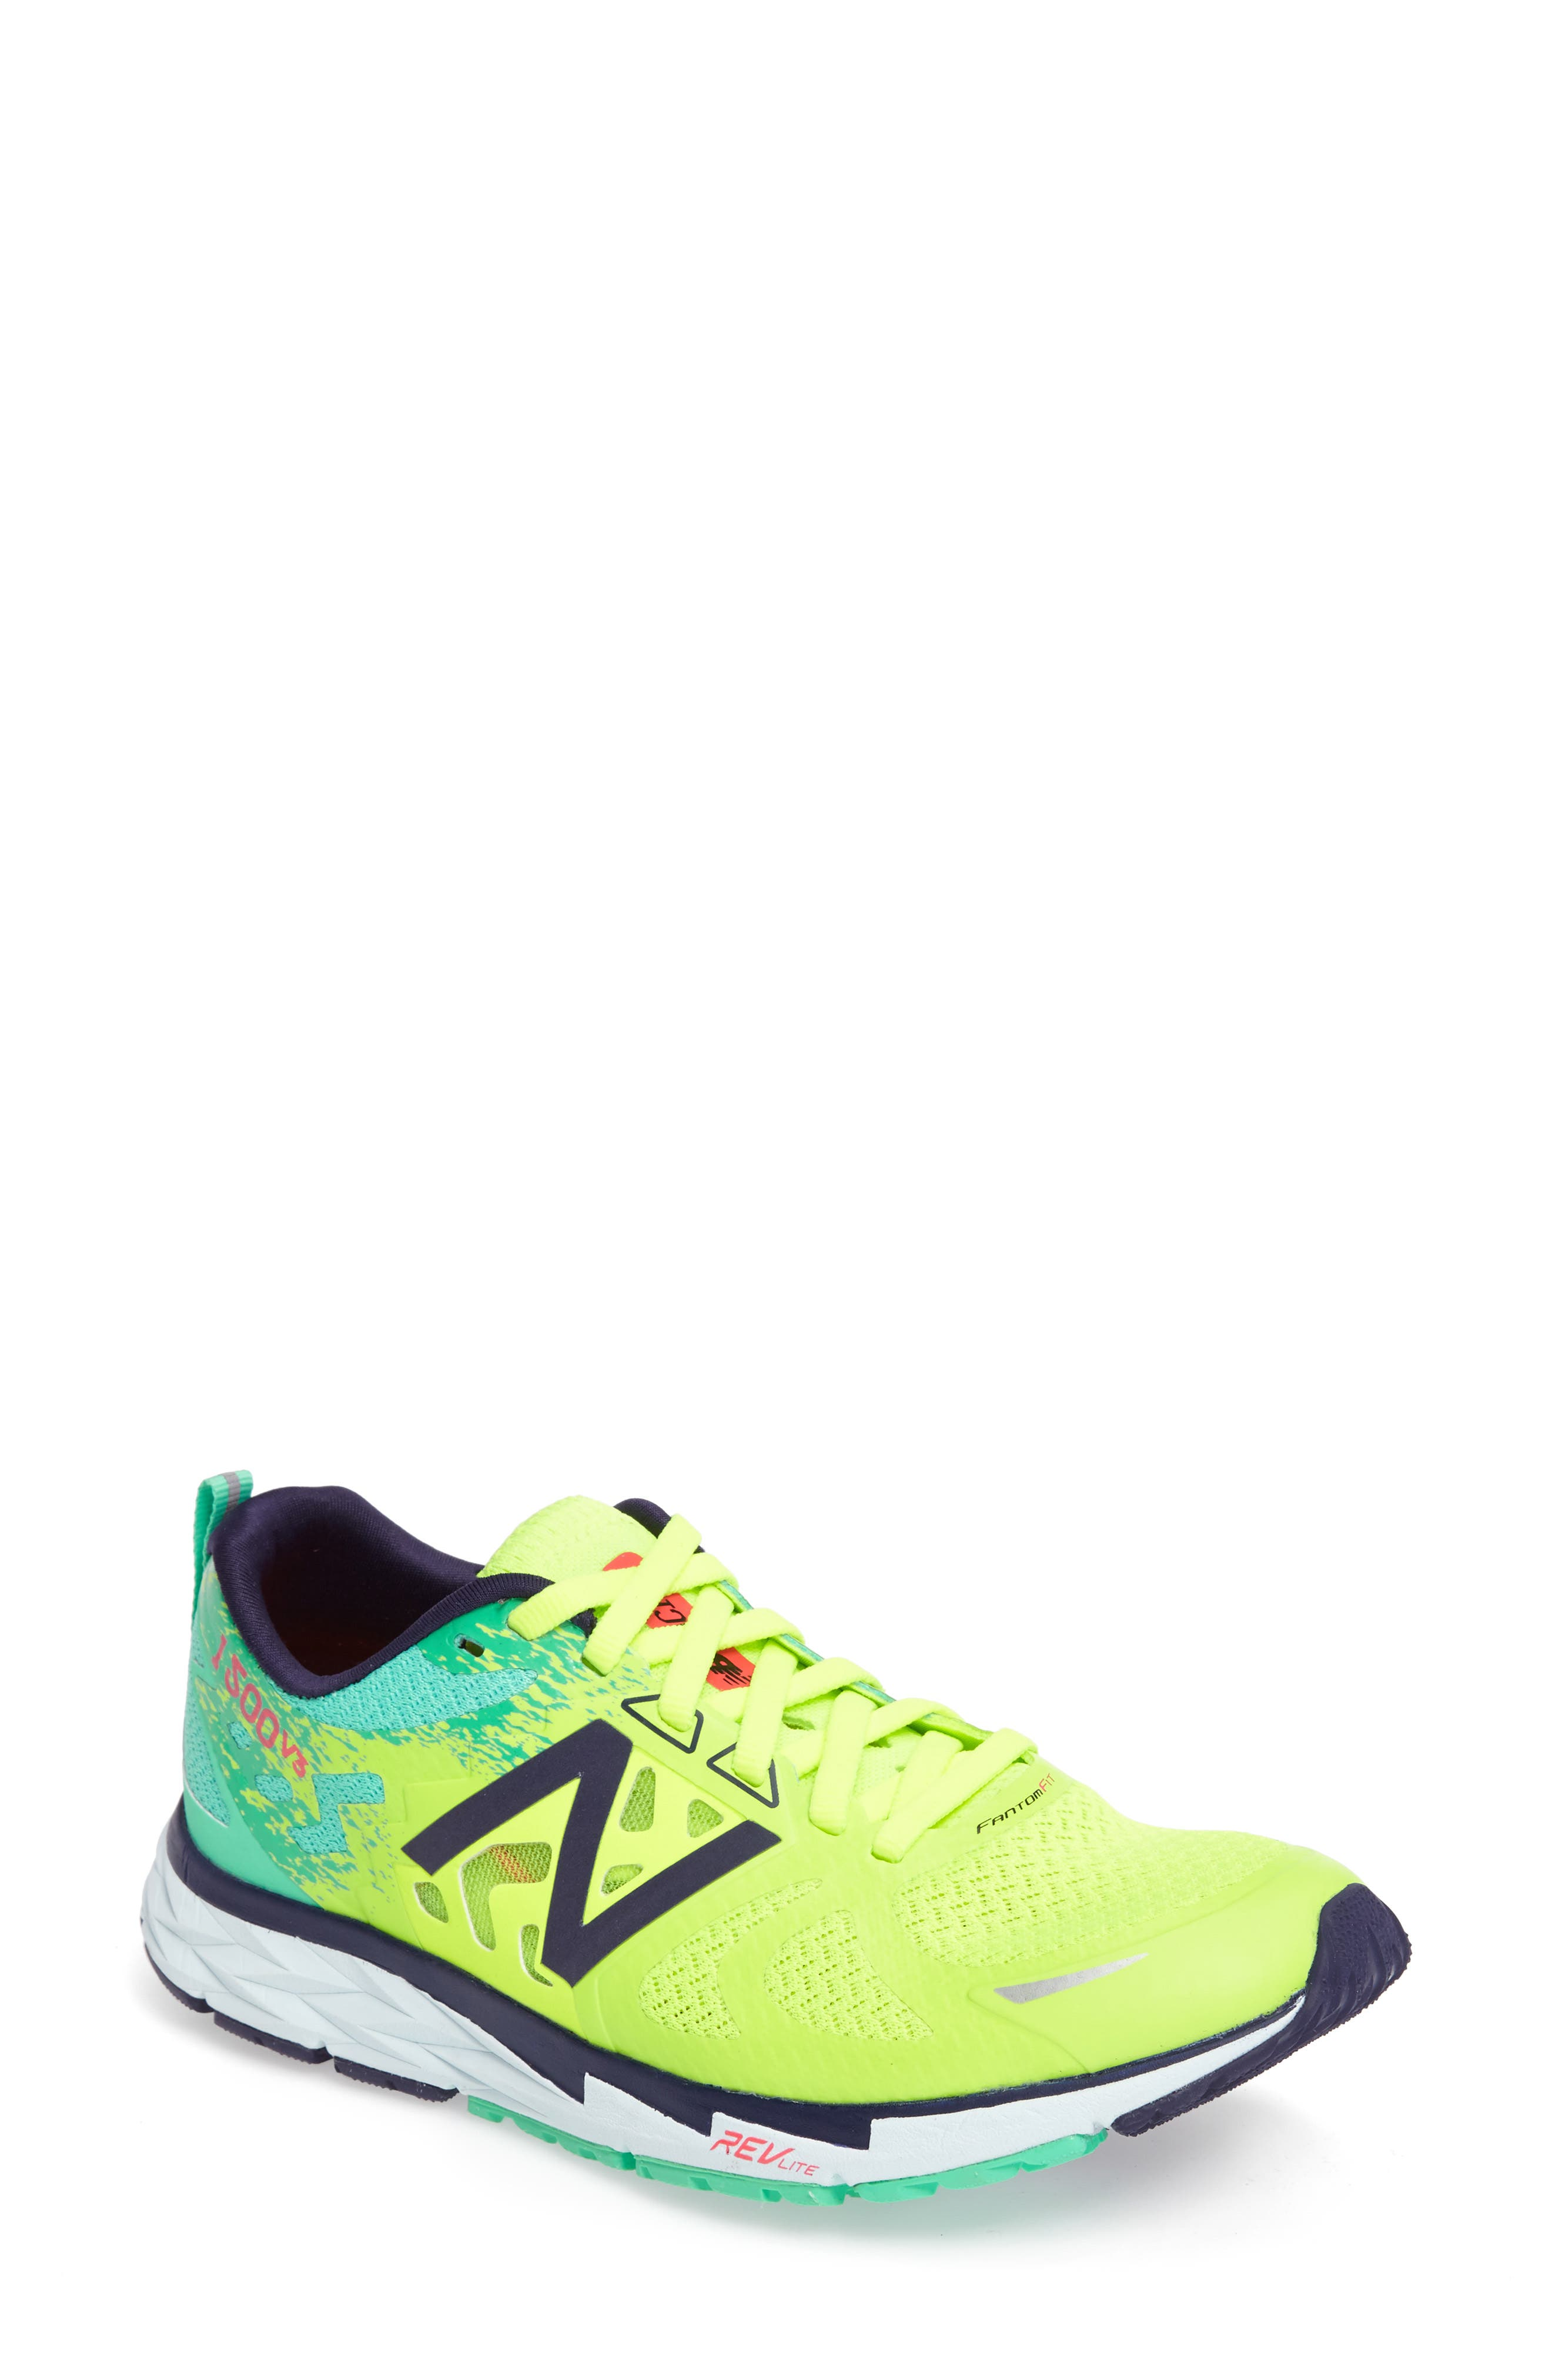 New Balance 1500v3 Running Shoe (Women)